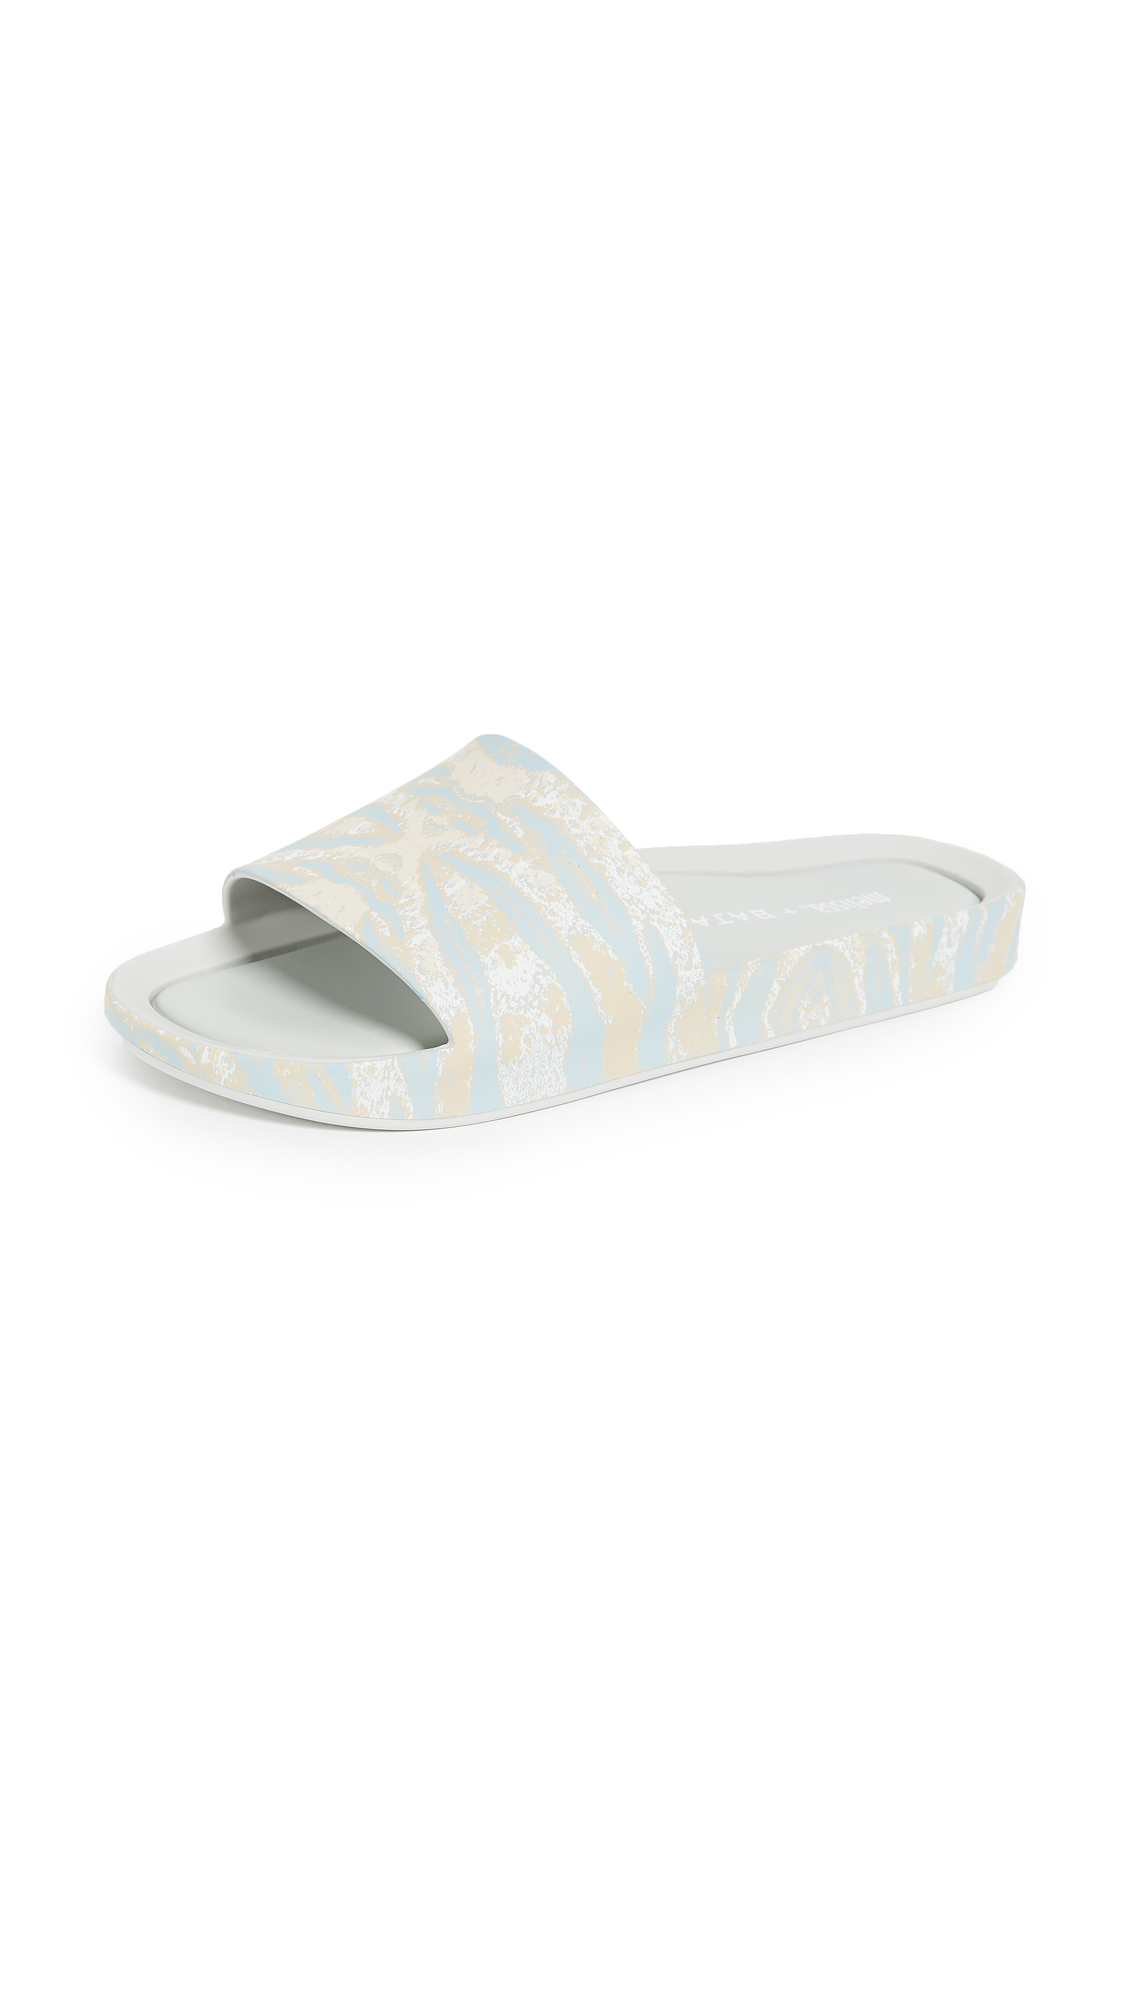 Melissa x Baja East Beach Slides - Grey Printed